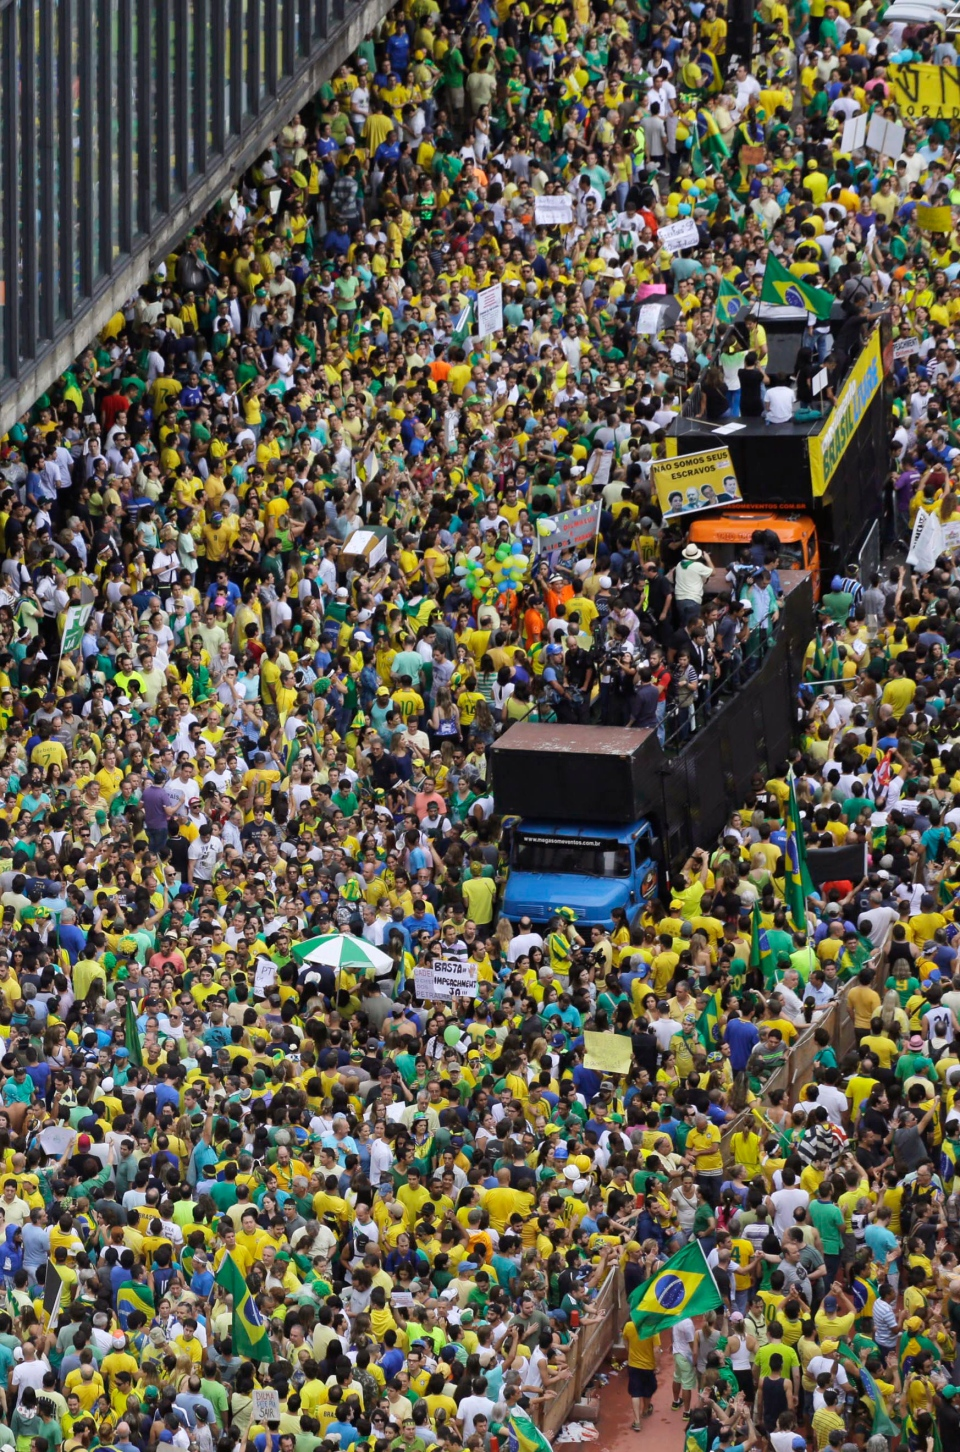 Demonstrators march along Paulista Avenue to demand the impeachment of Brazil's President Dilma Rousseff in Sao Paulo, Brazil on March 15, 2015. (AP / Nelson Antoine)